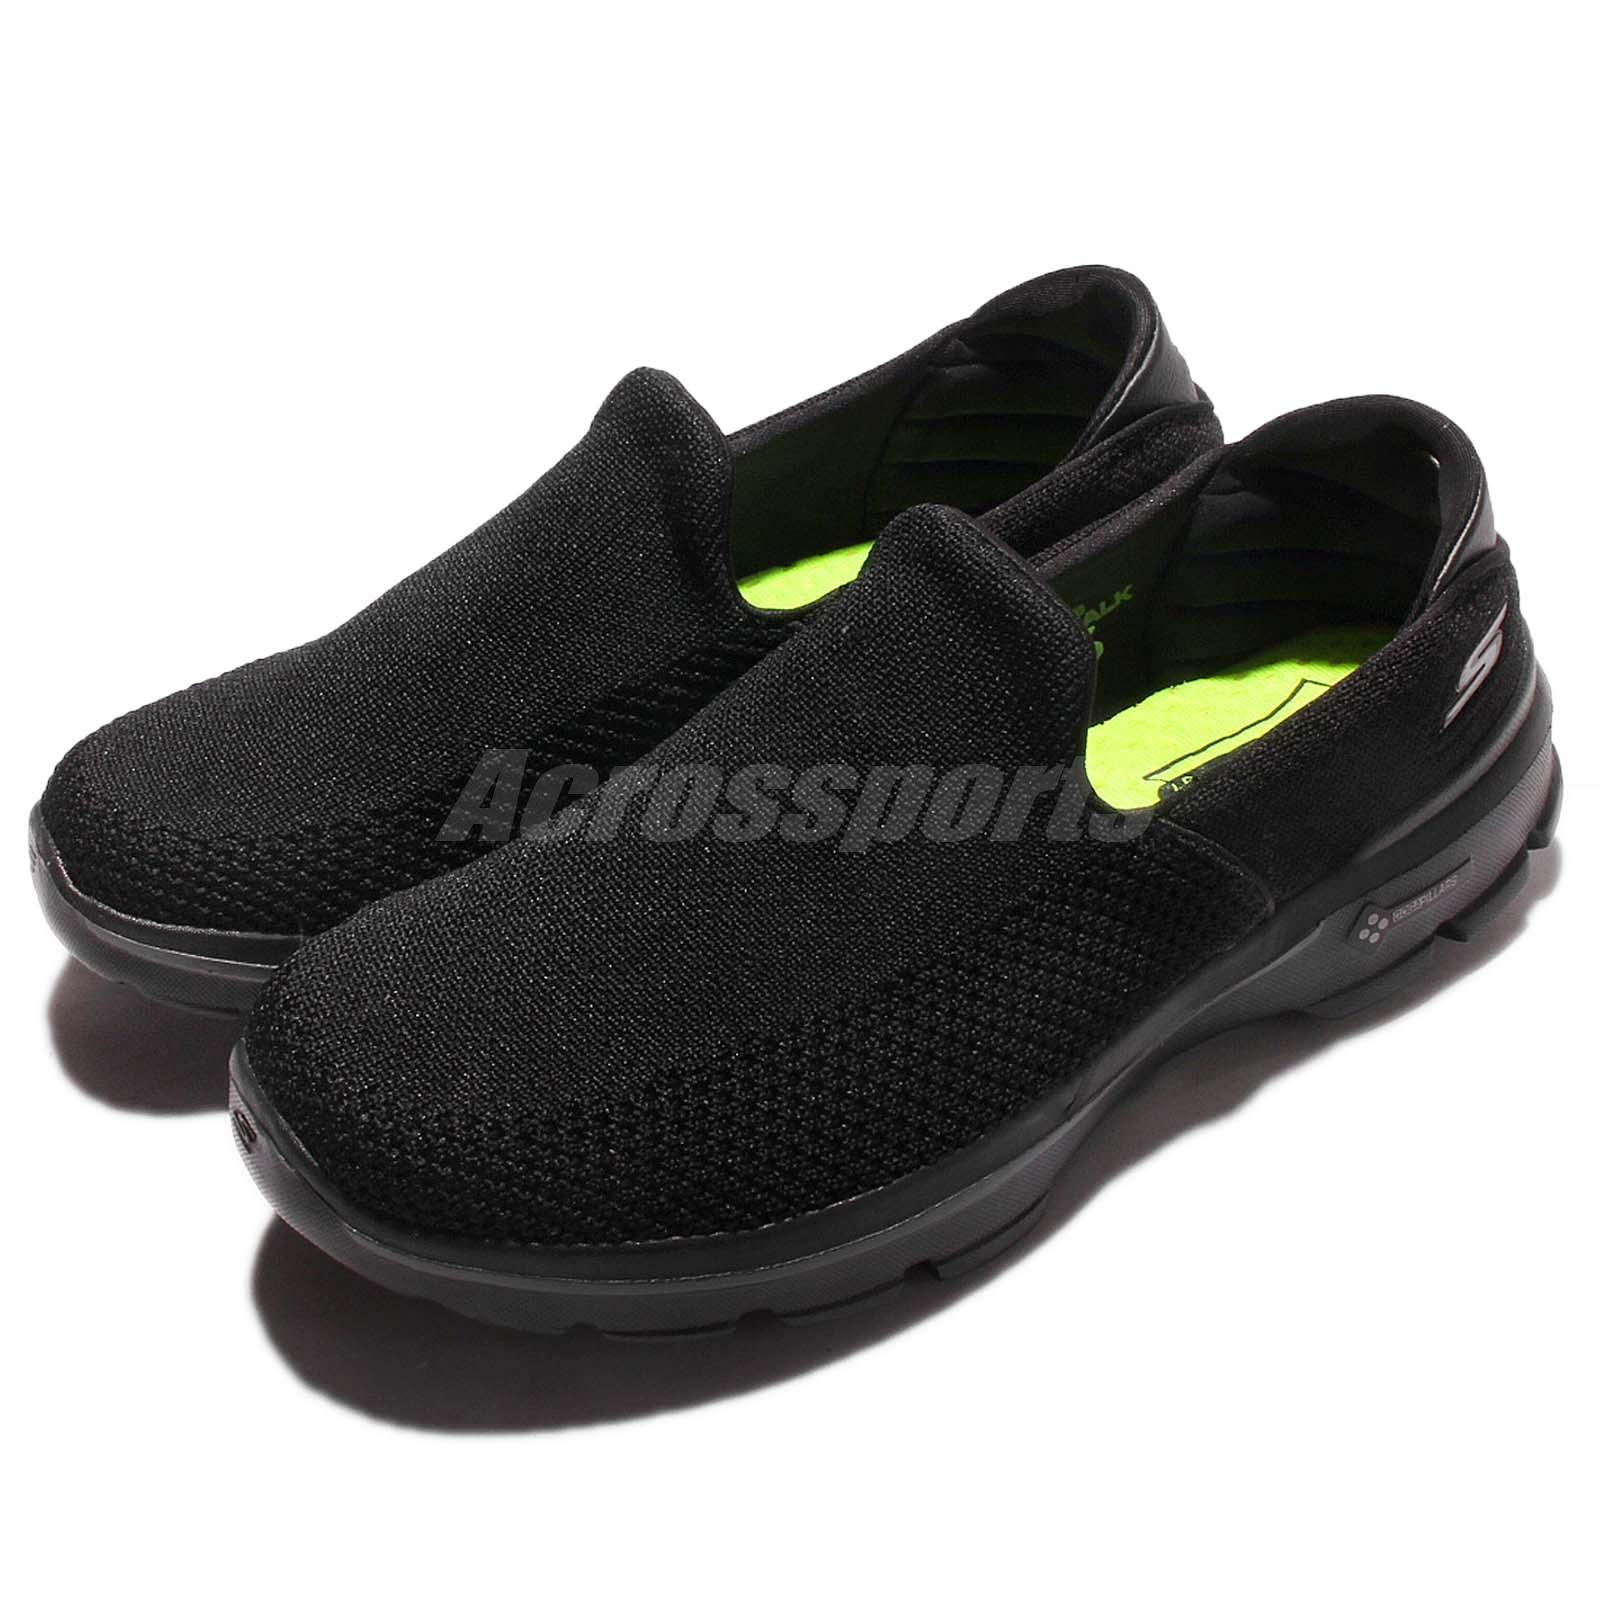 Mens Triple E Slip On Shoes